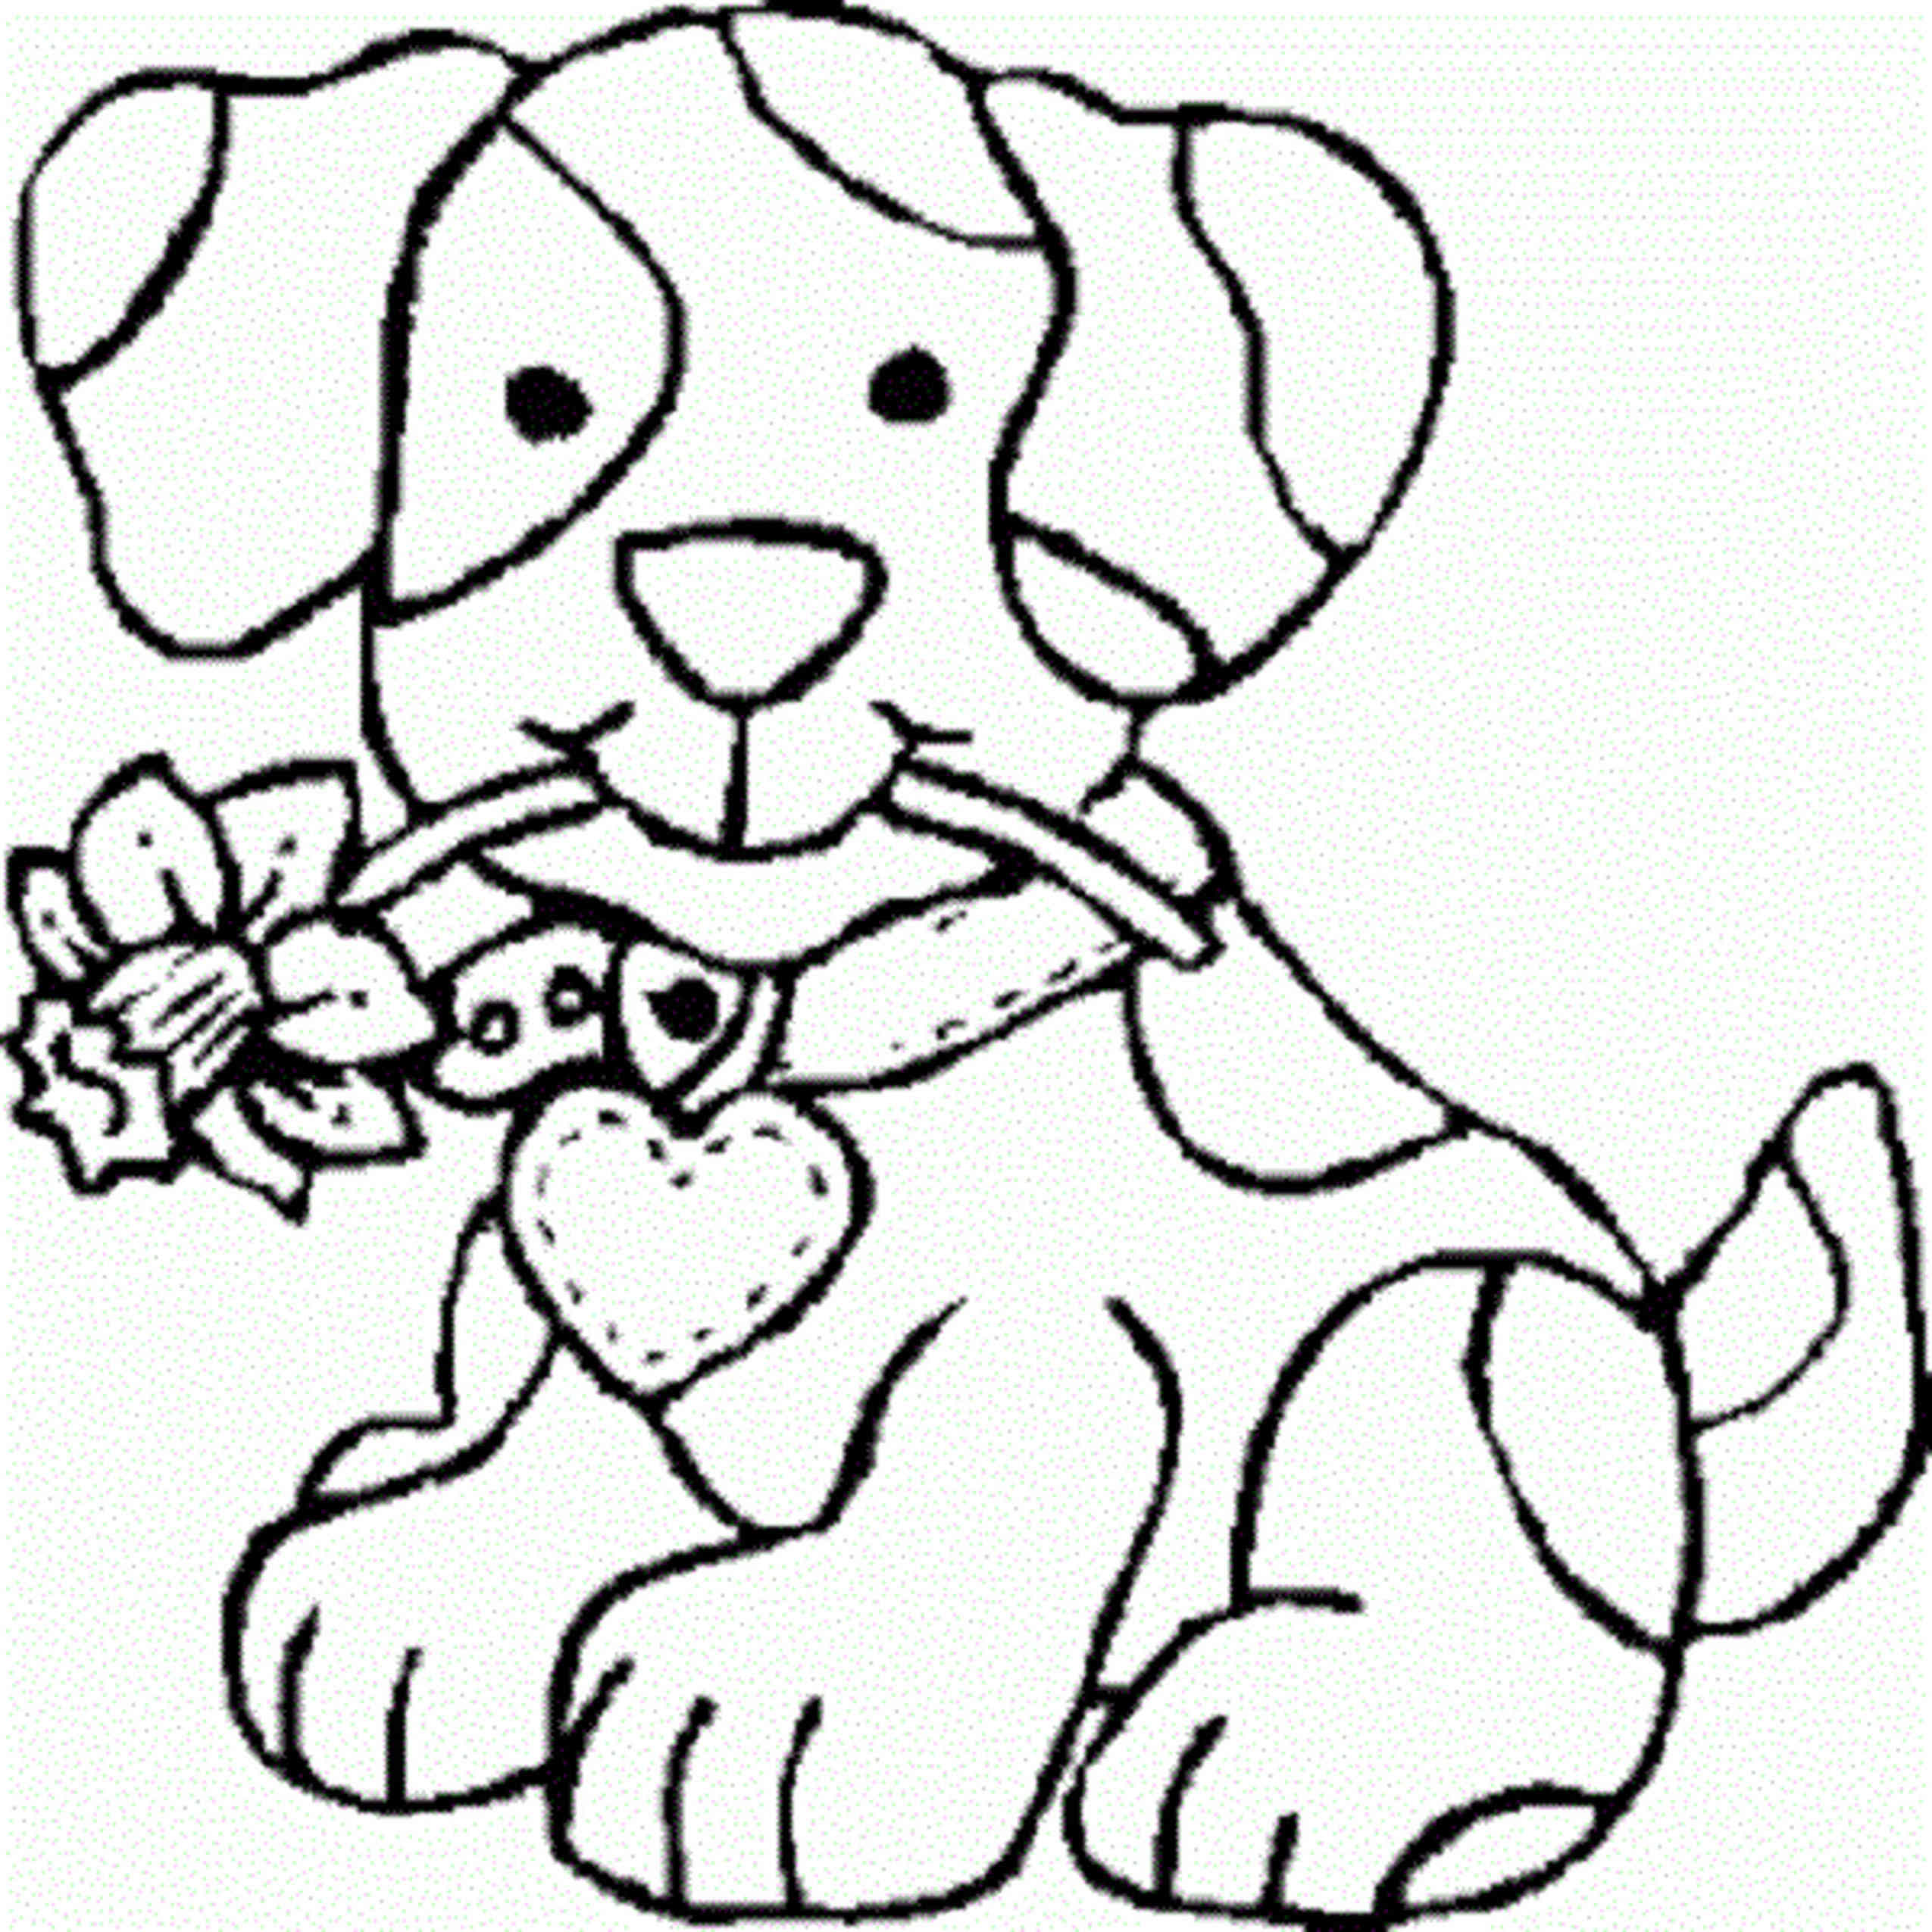 2550x2550 Coloring Pages For Teenagers